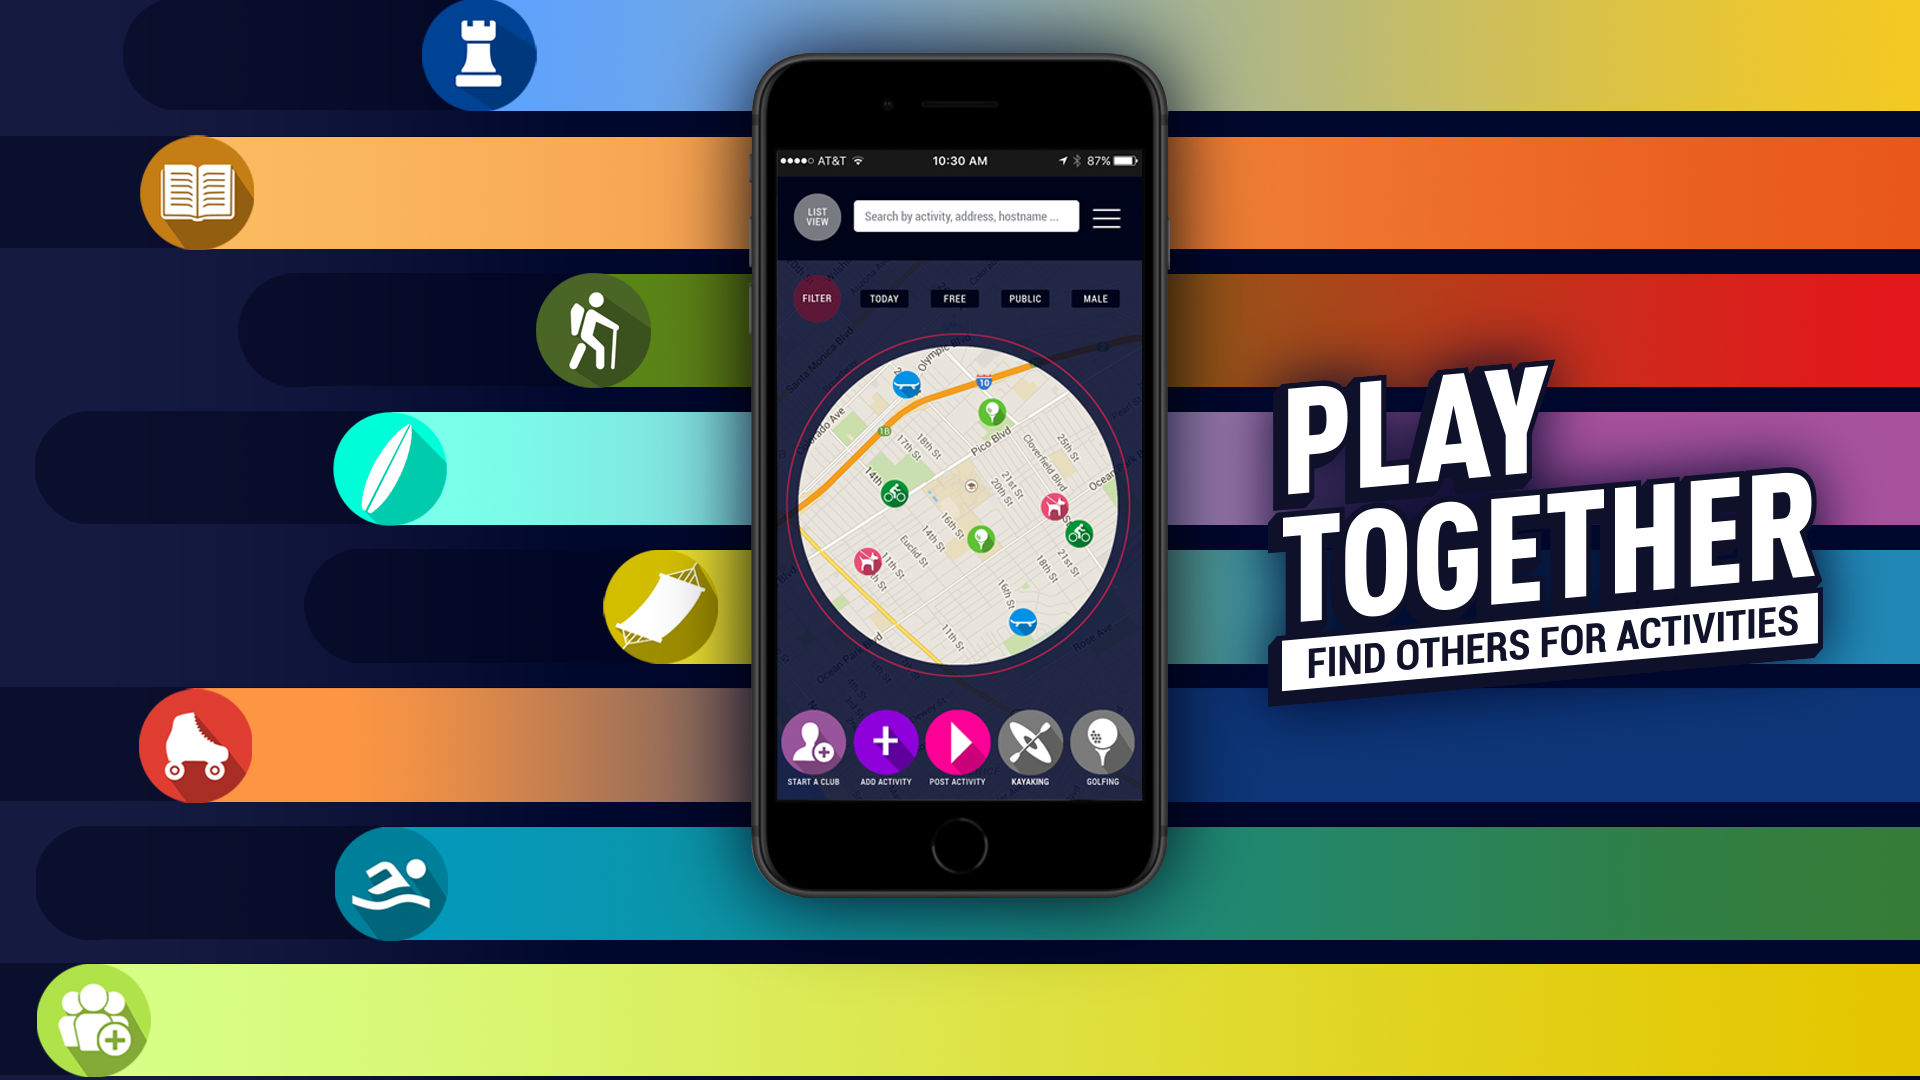 meclub app - play together - find others for activities